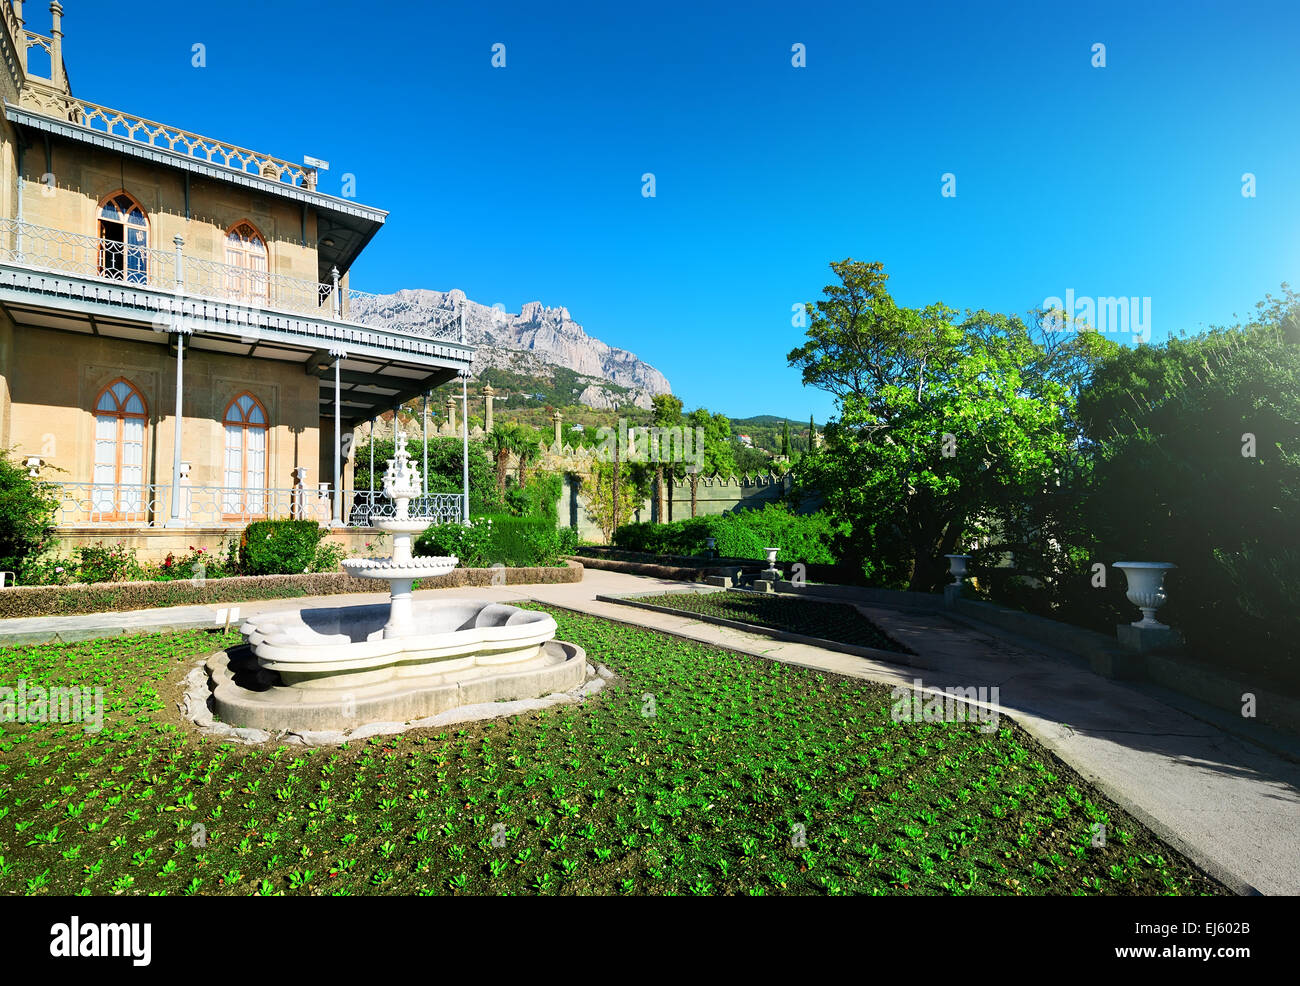 Spring in Vorontsov's residence in the mountains - Stock Image